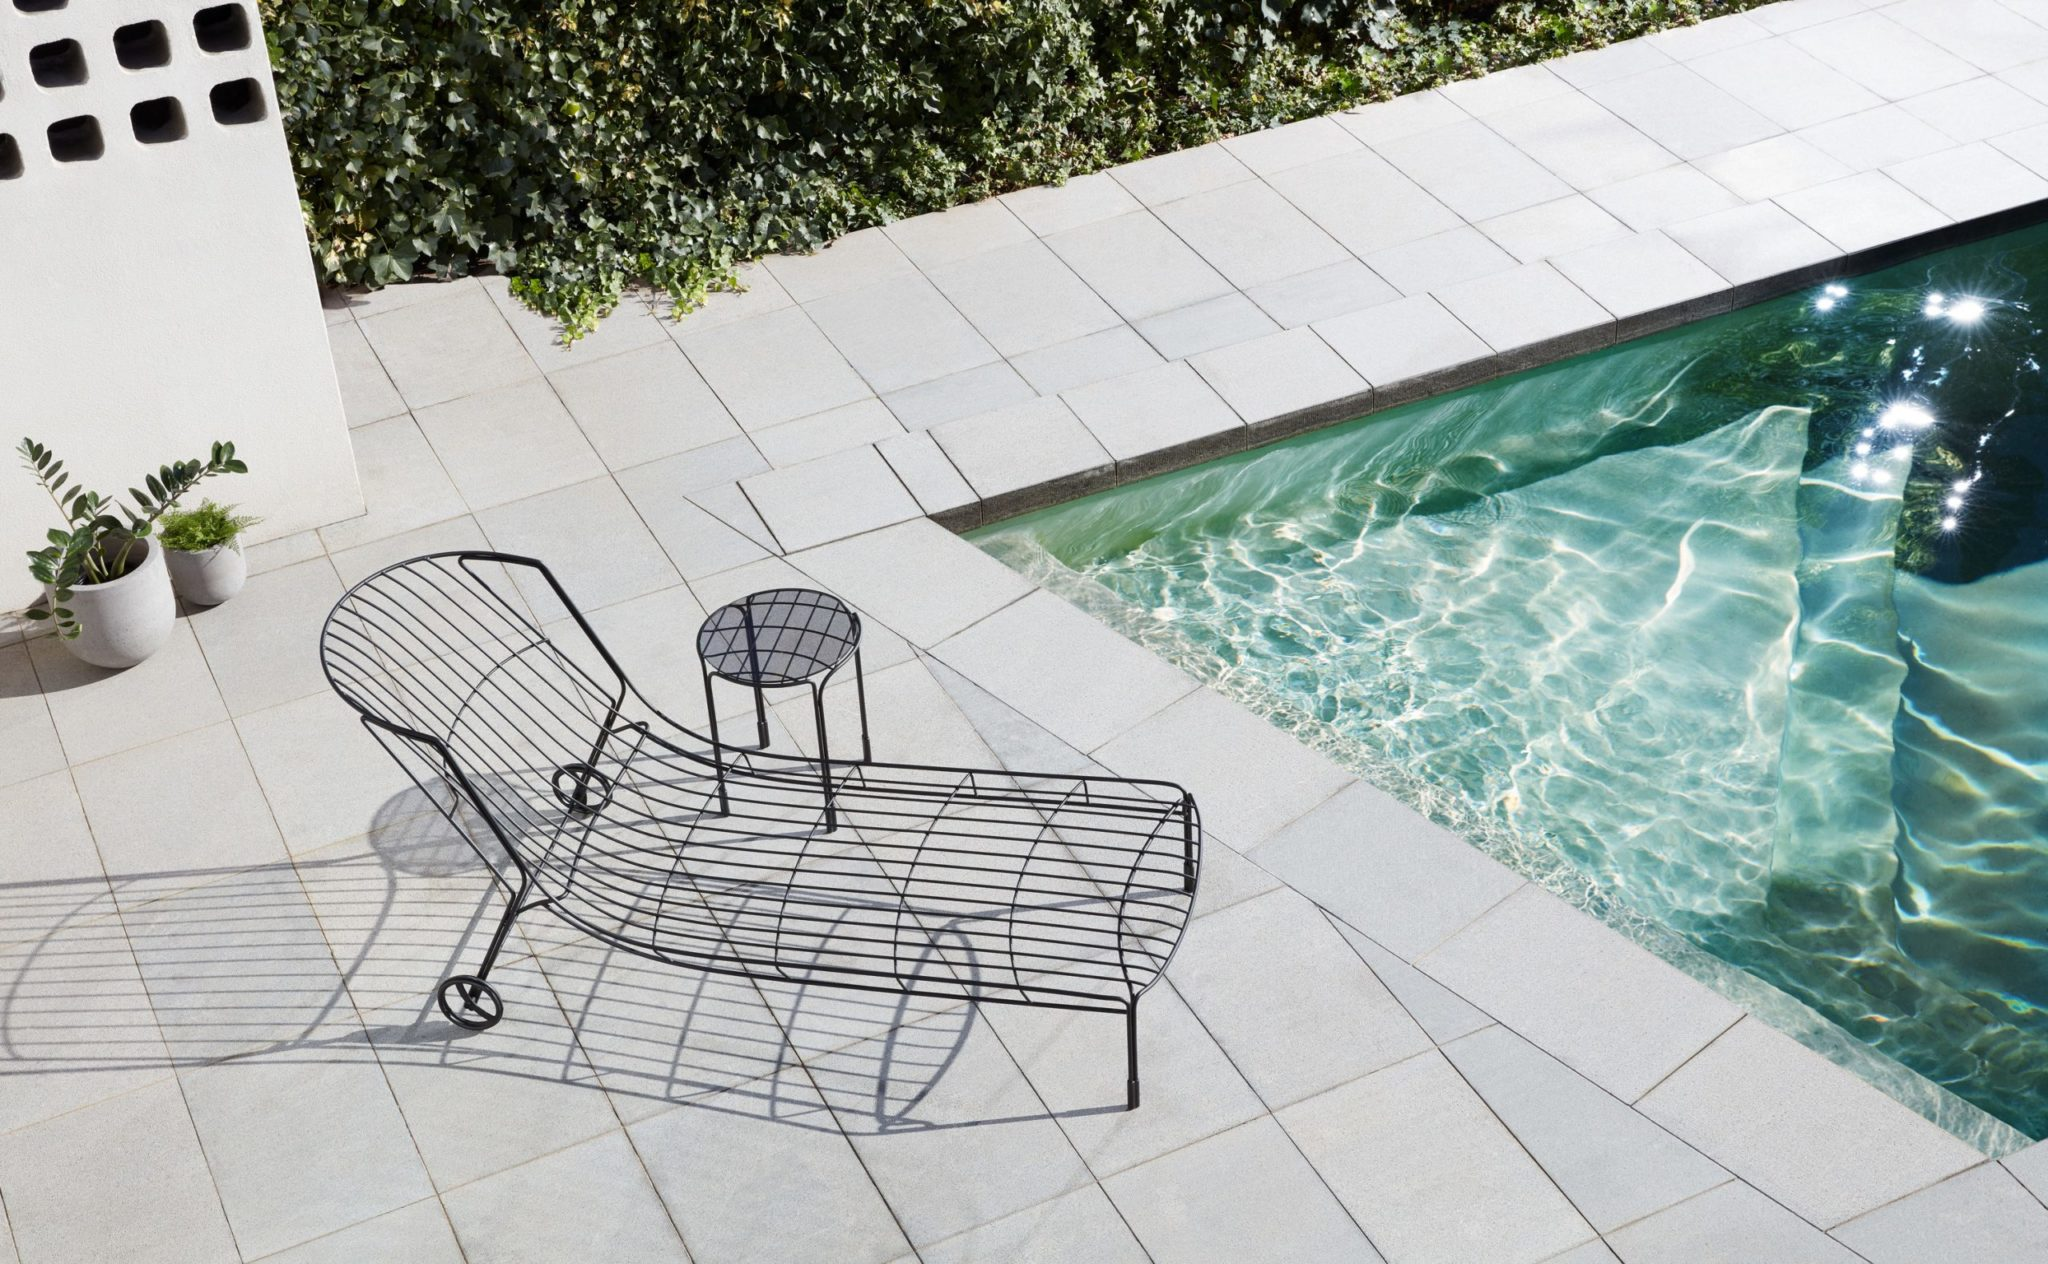 The Tidal Side Table - a supremely elegant outdoor side table - is a reflection of idyllic, sun-streaked summers of Australia in the '70s